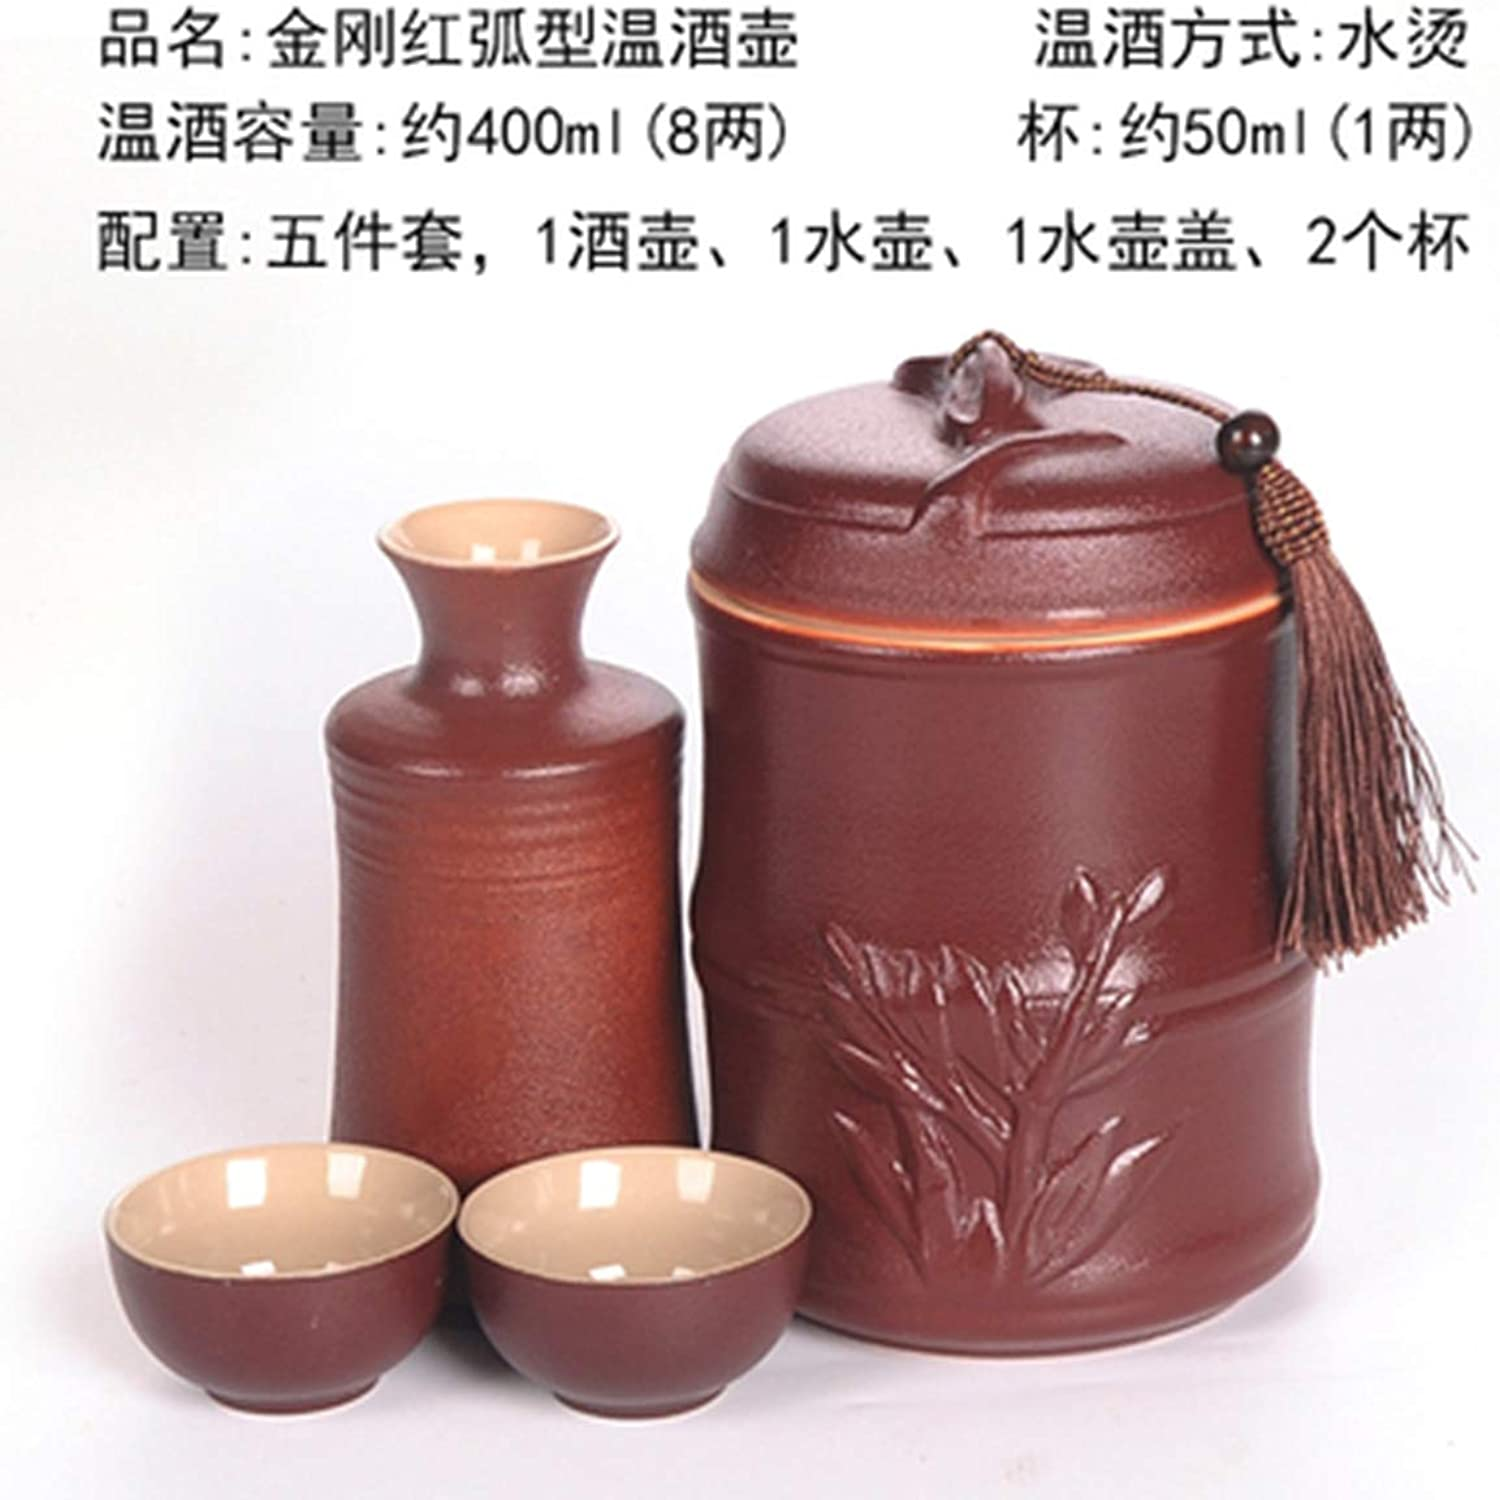 Warm Wine Pot Home Ceramic Hot Pot Pot Wine Large Capacity Hot Wine Yellow Wine Warm Wine Set Eight Two and A Half Pounds